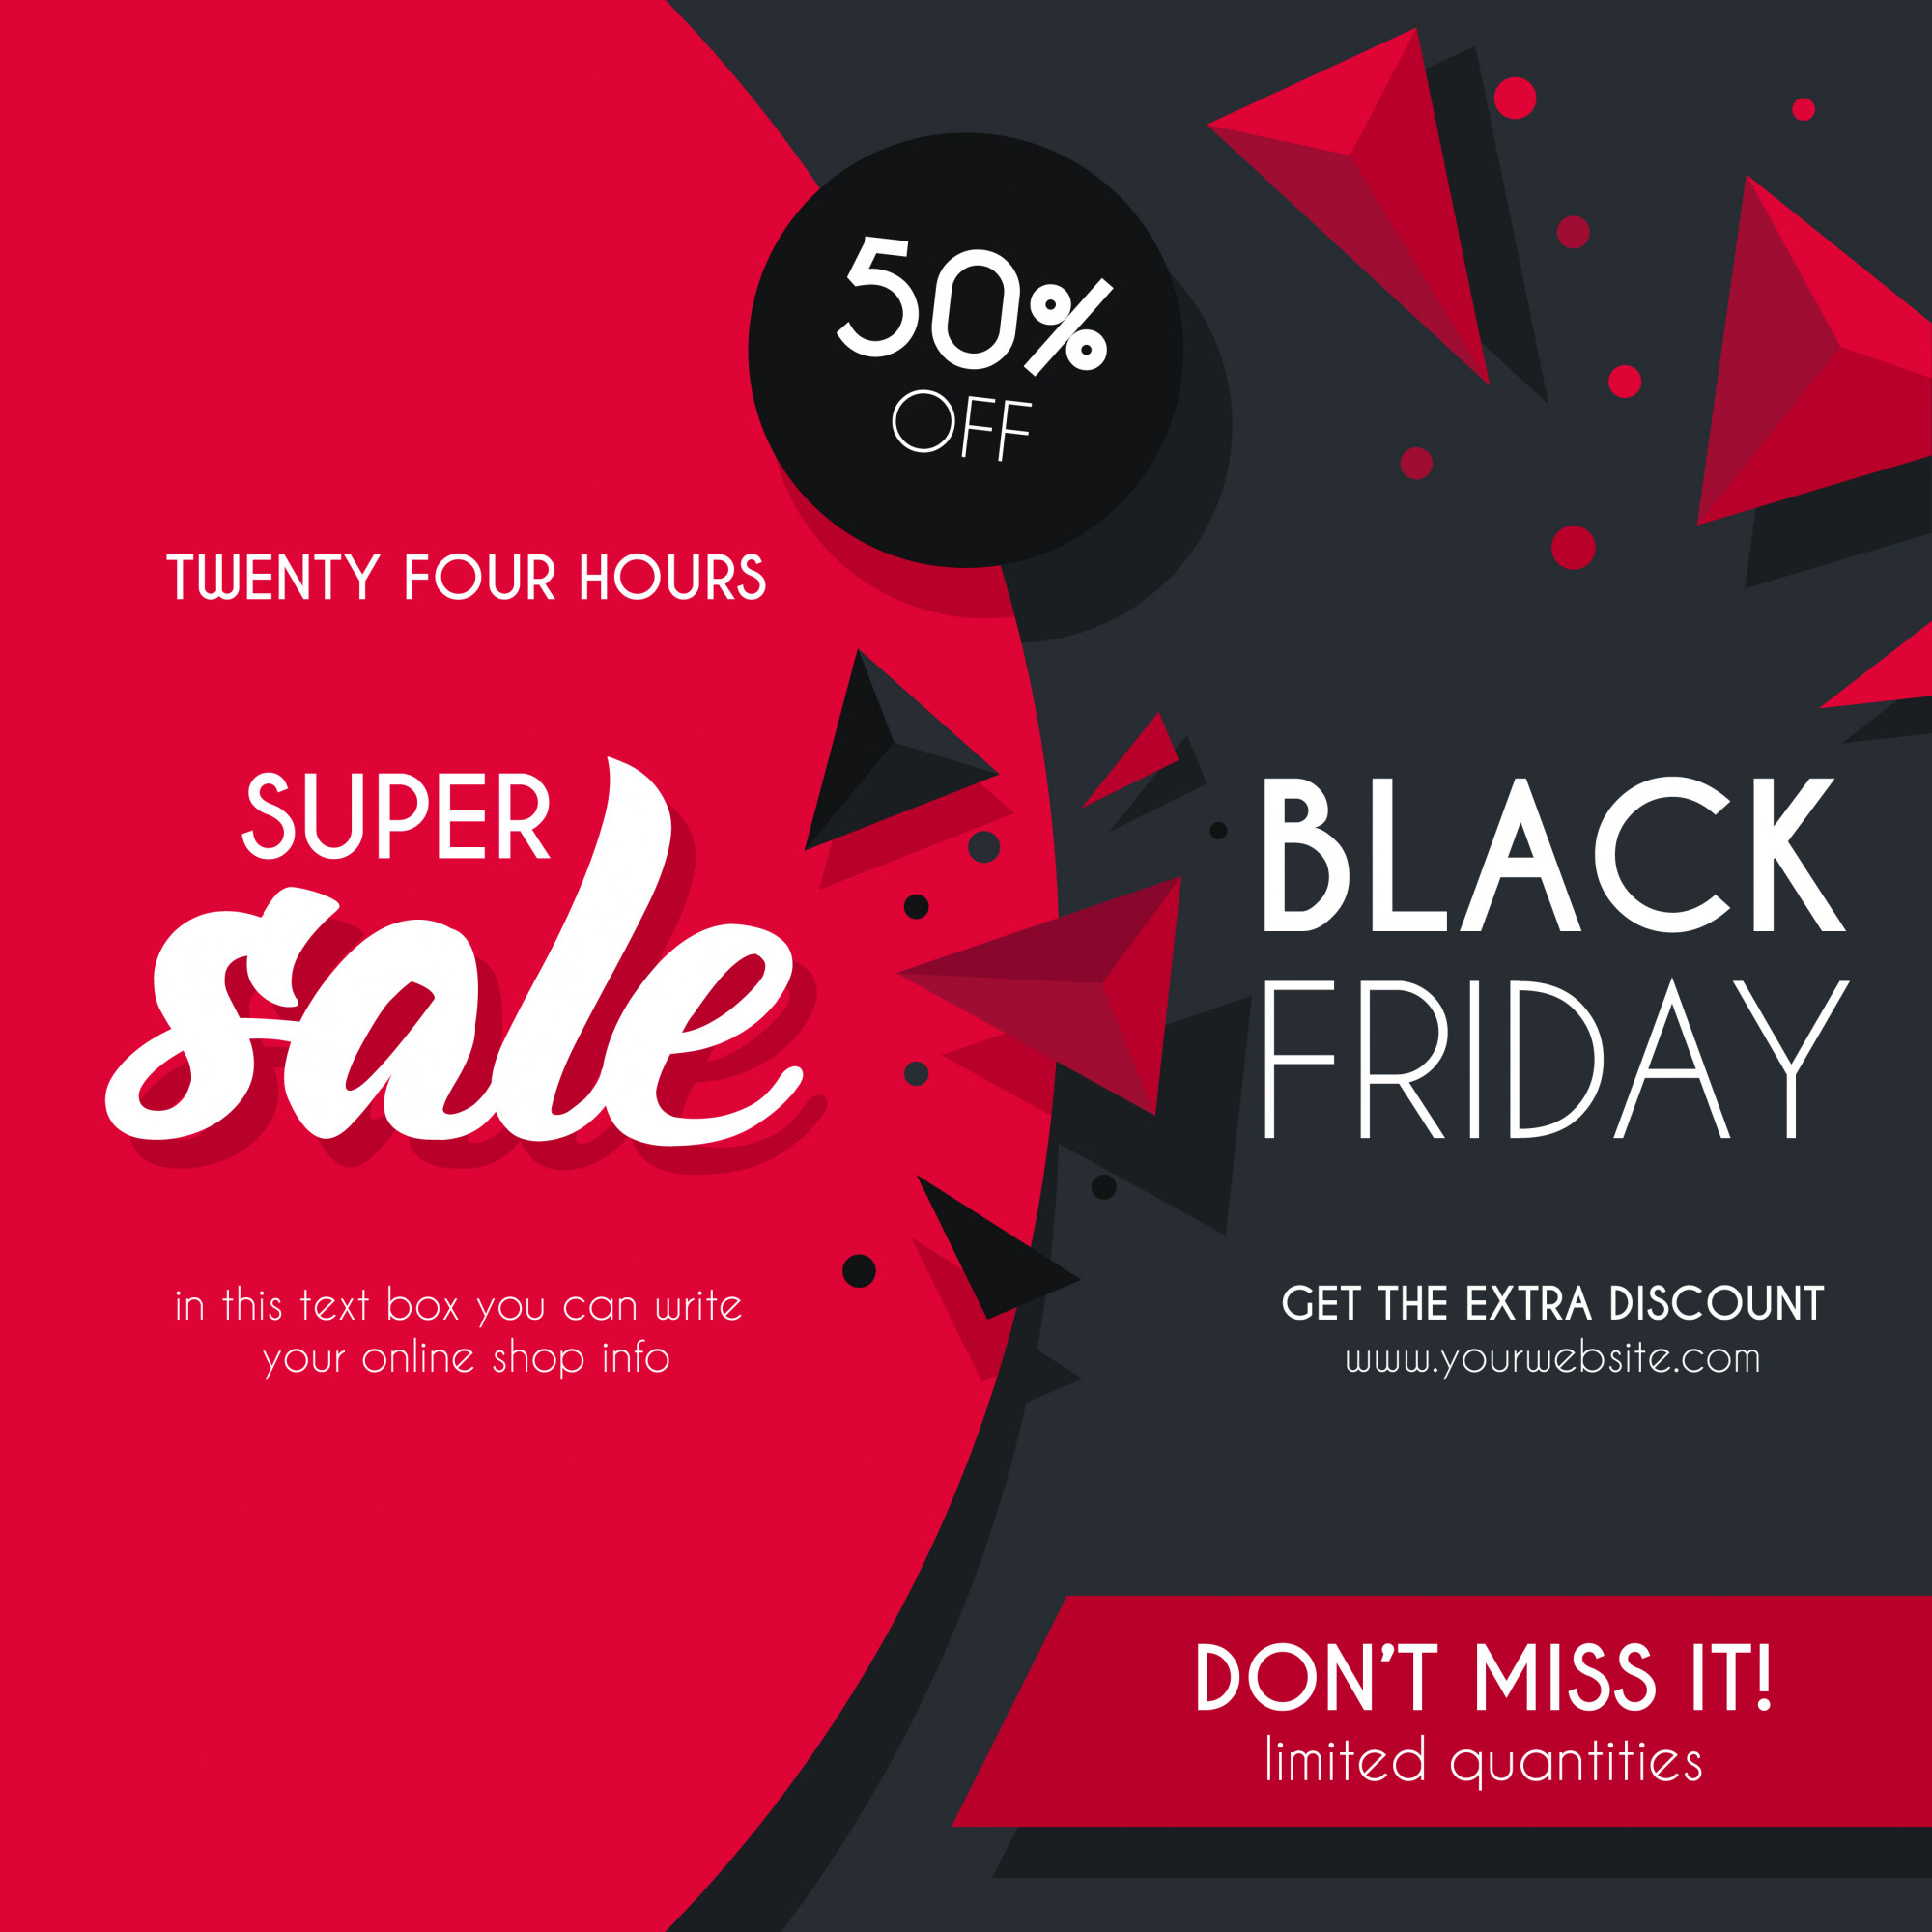 Black and Red Sale Background for Black Friday